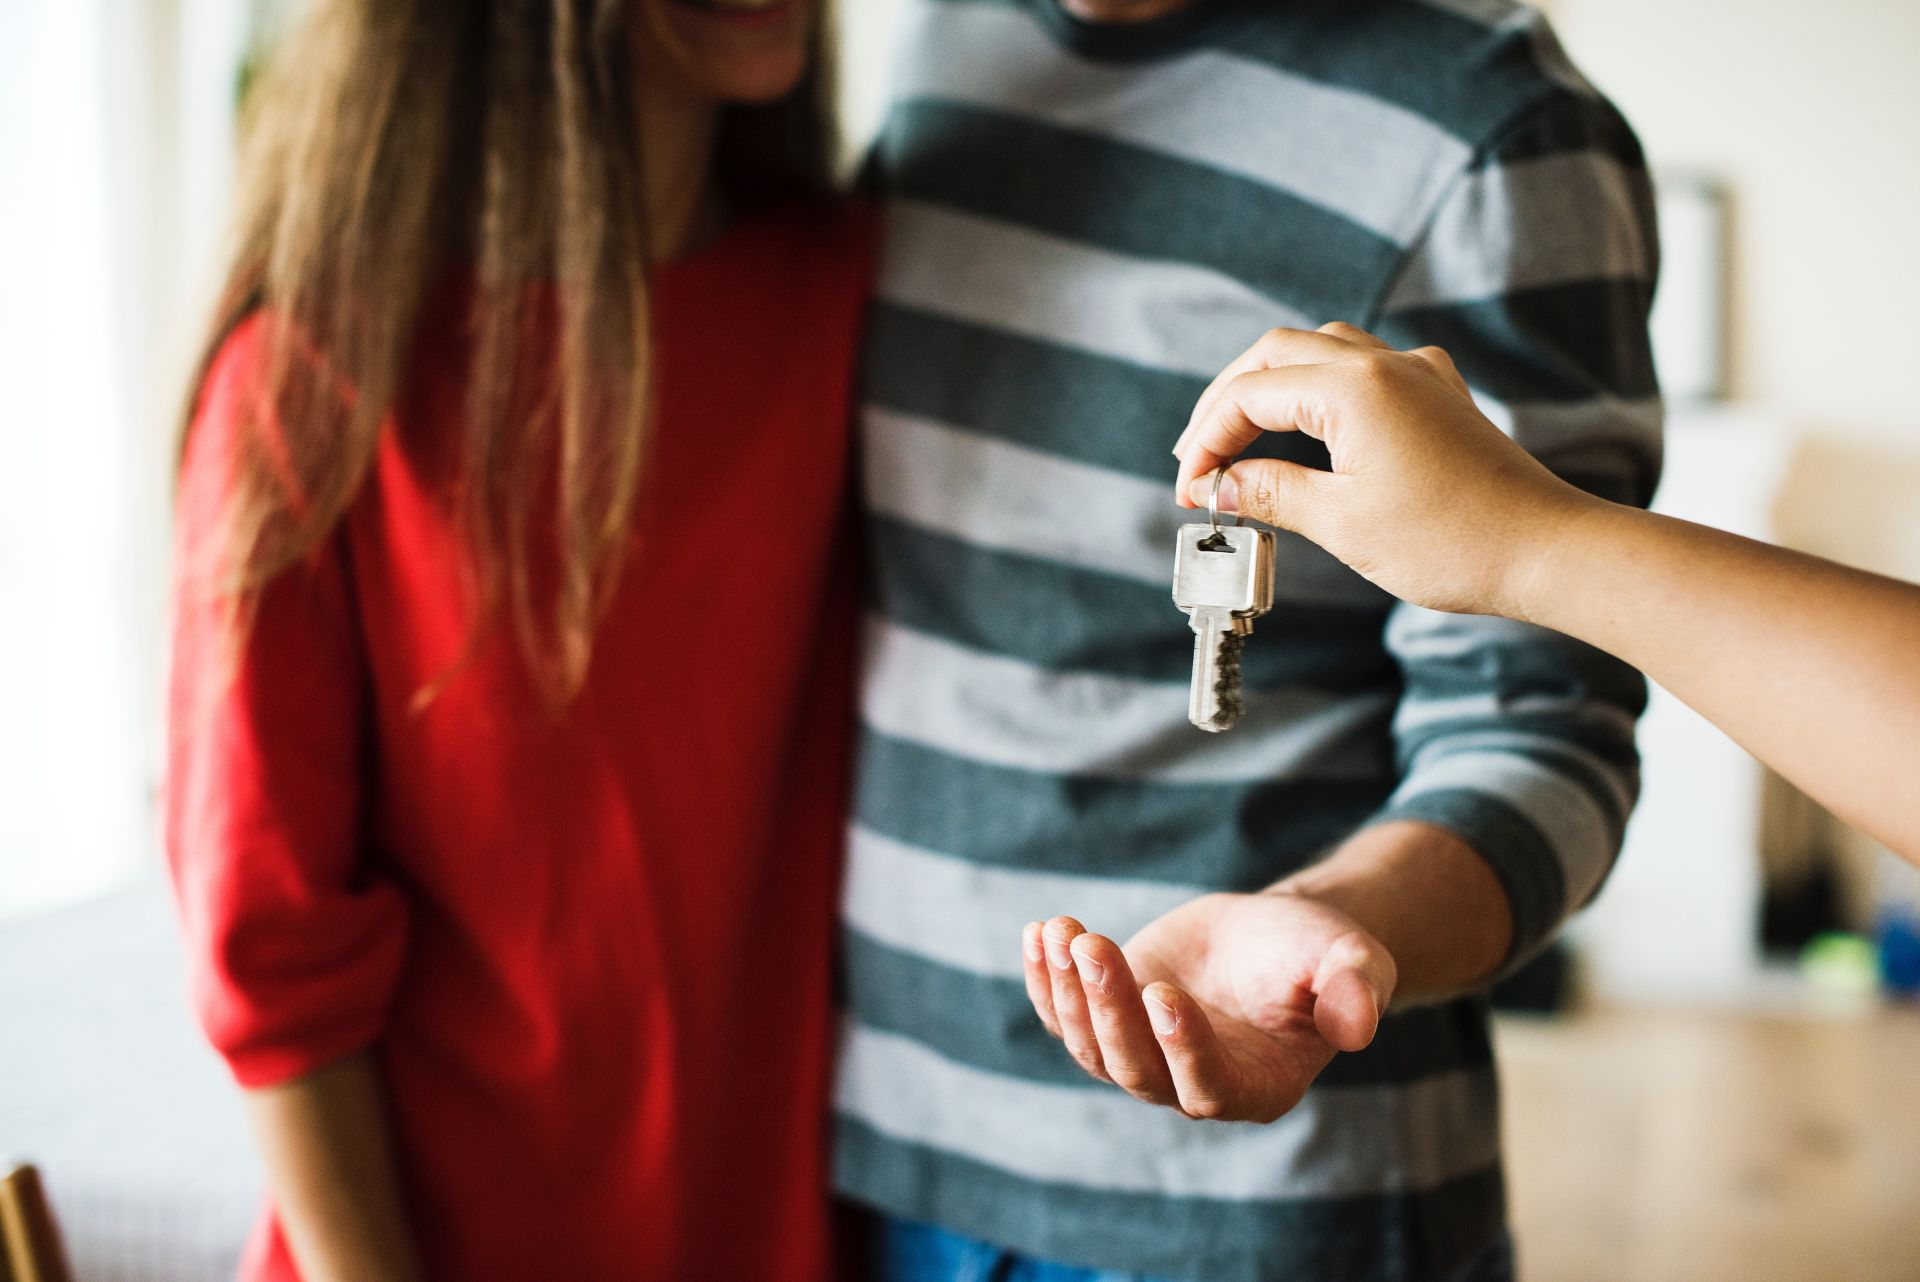 Why Do You Want to Buy a Home?